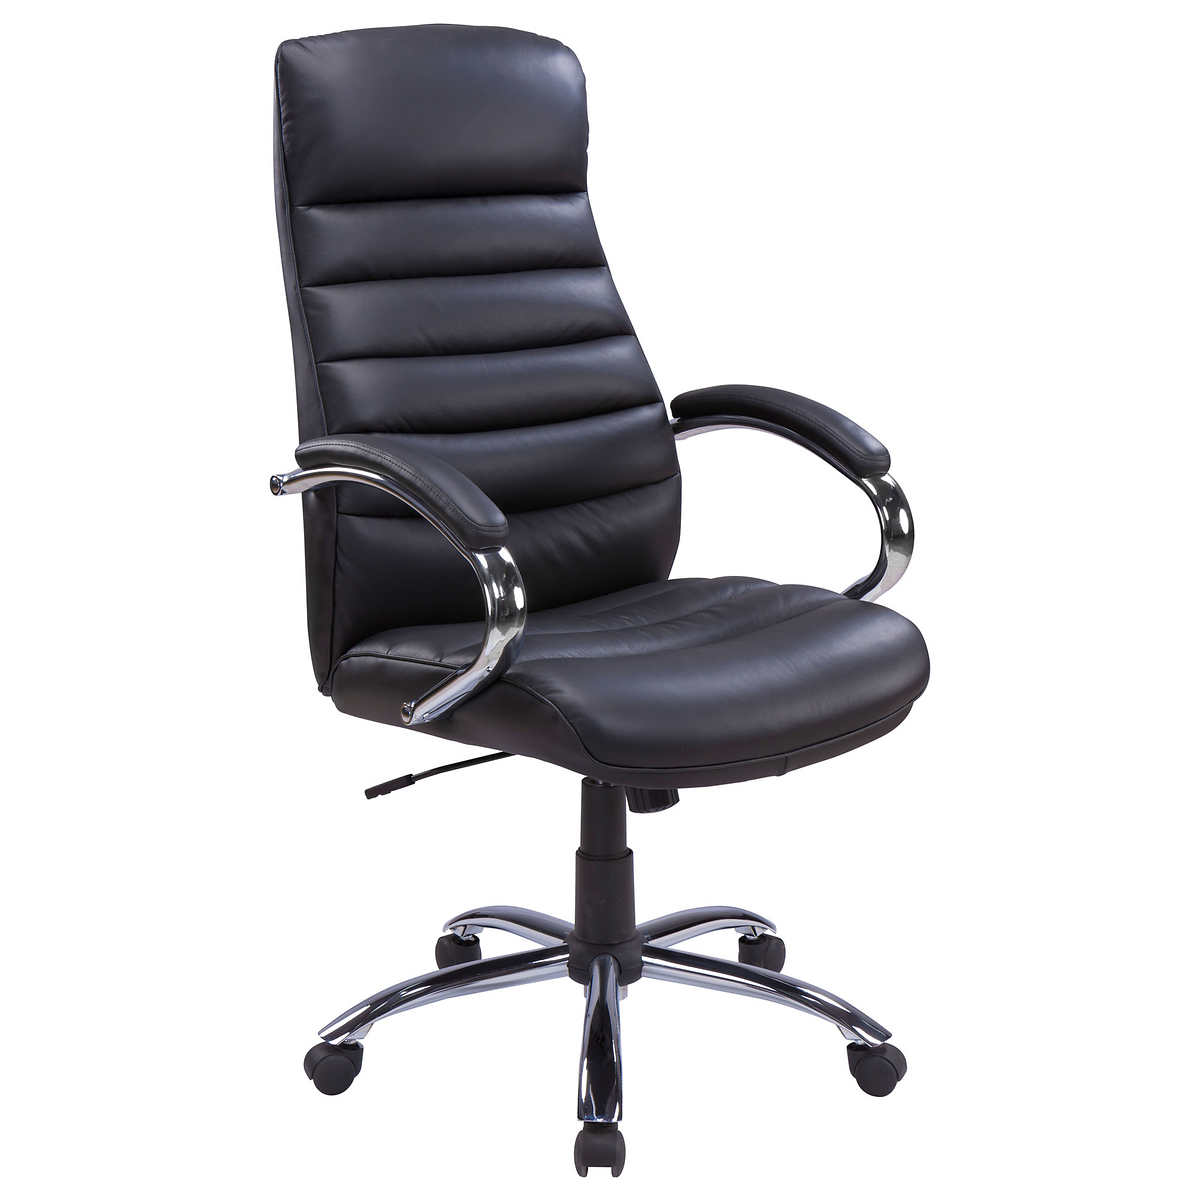 office chairs  costco - tygerclaw modern executive high back office chair